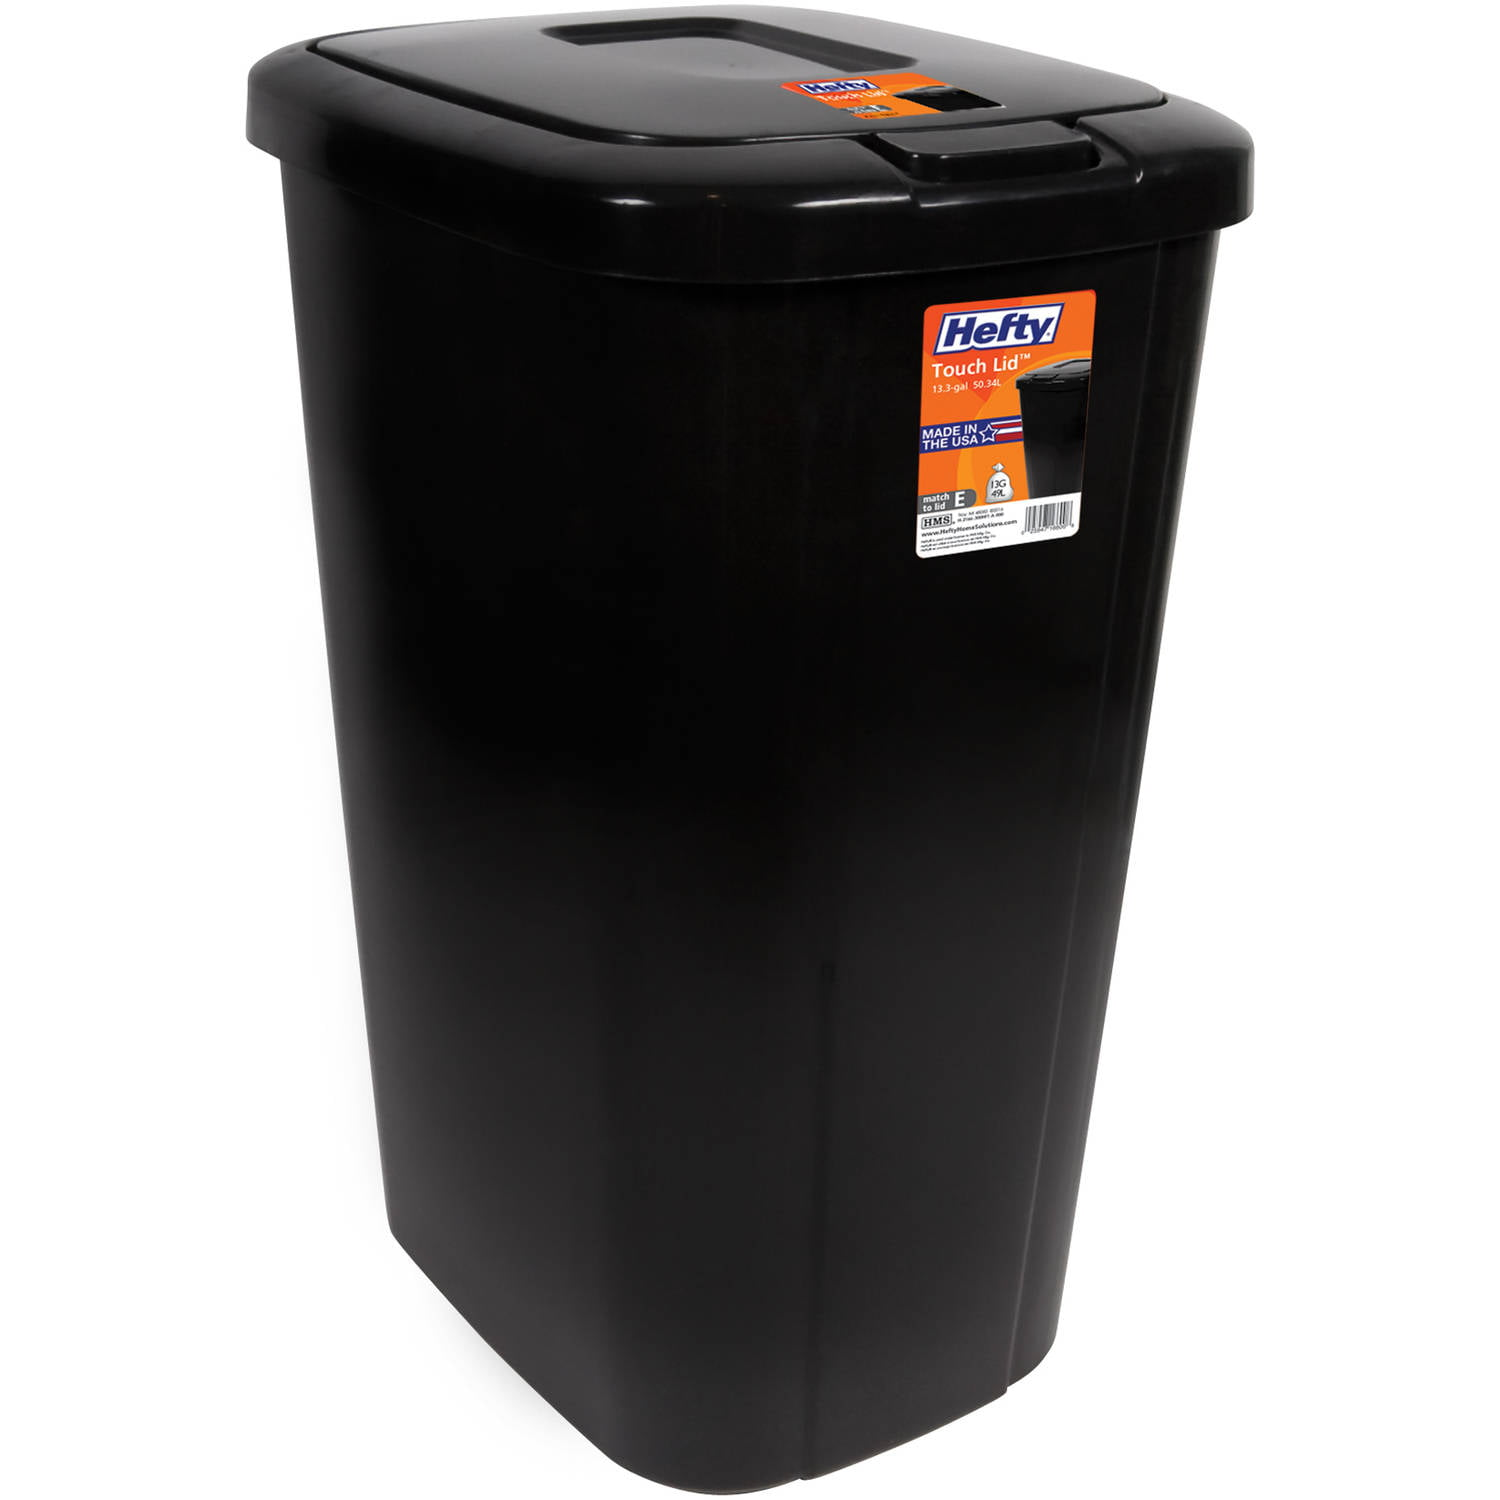 Hefty touch lid 13 3 gallon trash can black wastebasket Kitchen garbage cans